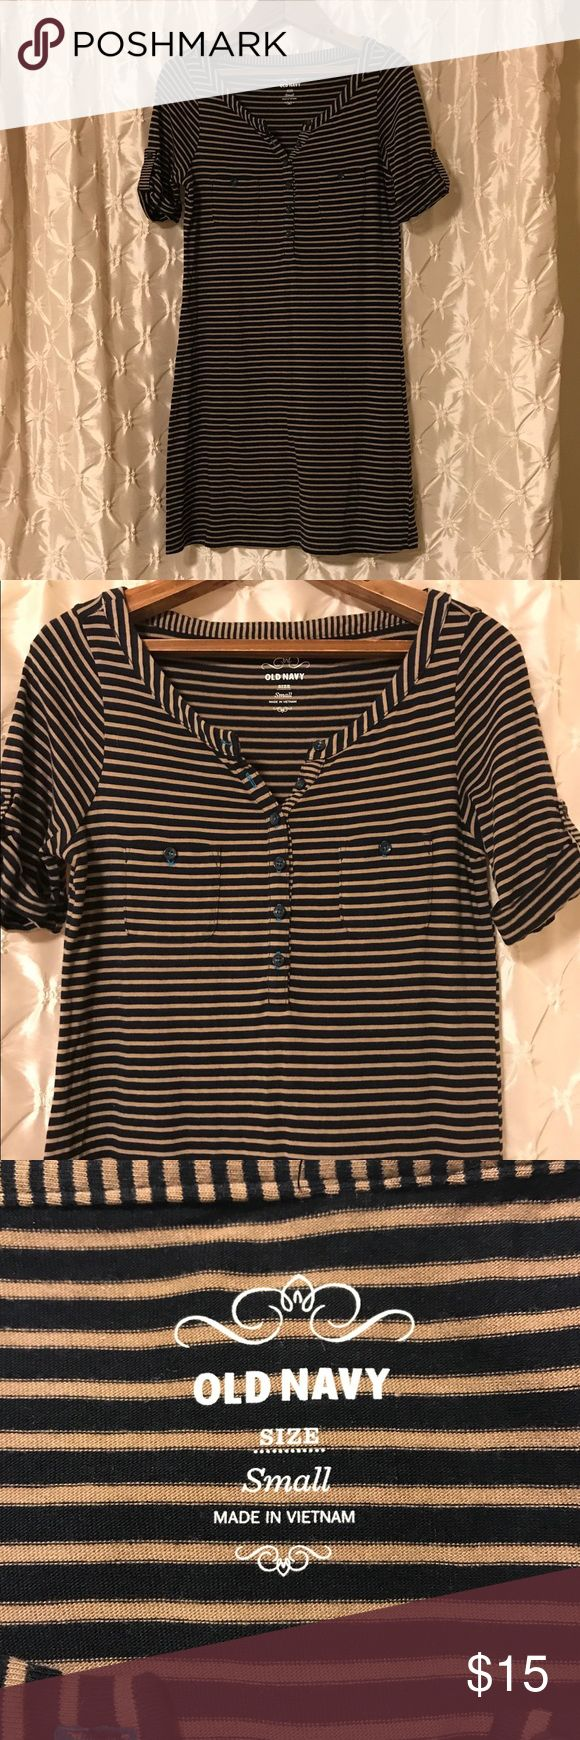 "Old Navy striped dress You're looking at a like new Old Navy dress in size small. Dark tan and navy striped, with cuffed sleeves and Henley collar. Cute bright blue accent stitching for buttons. Adorable!  Measurements Laying flat- length 32.5"", pit to pit 16.5"".   ♥️offers! ♥️bundles!! Old Navy Dresses"